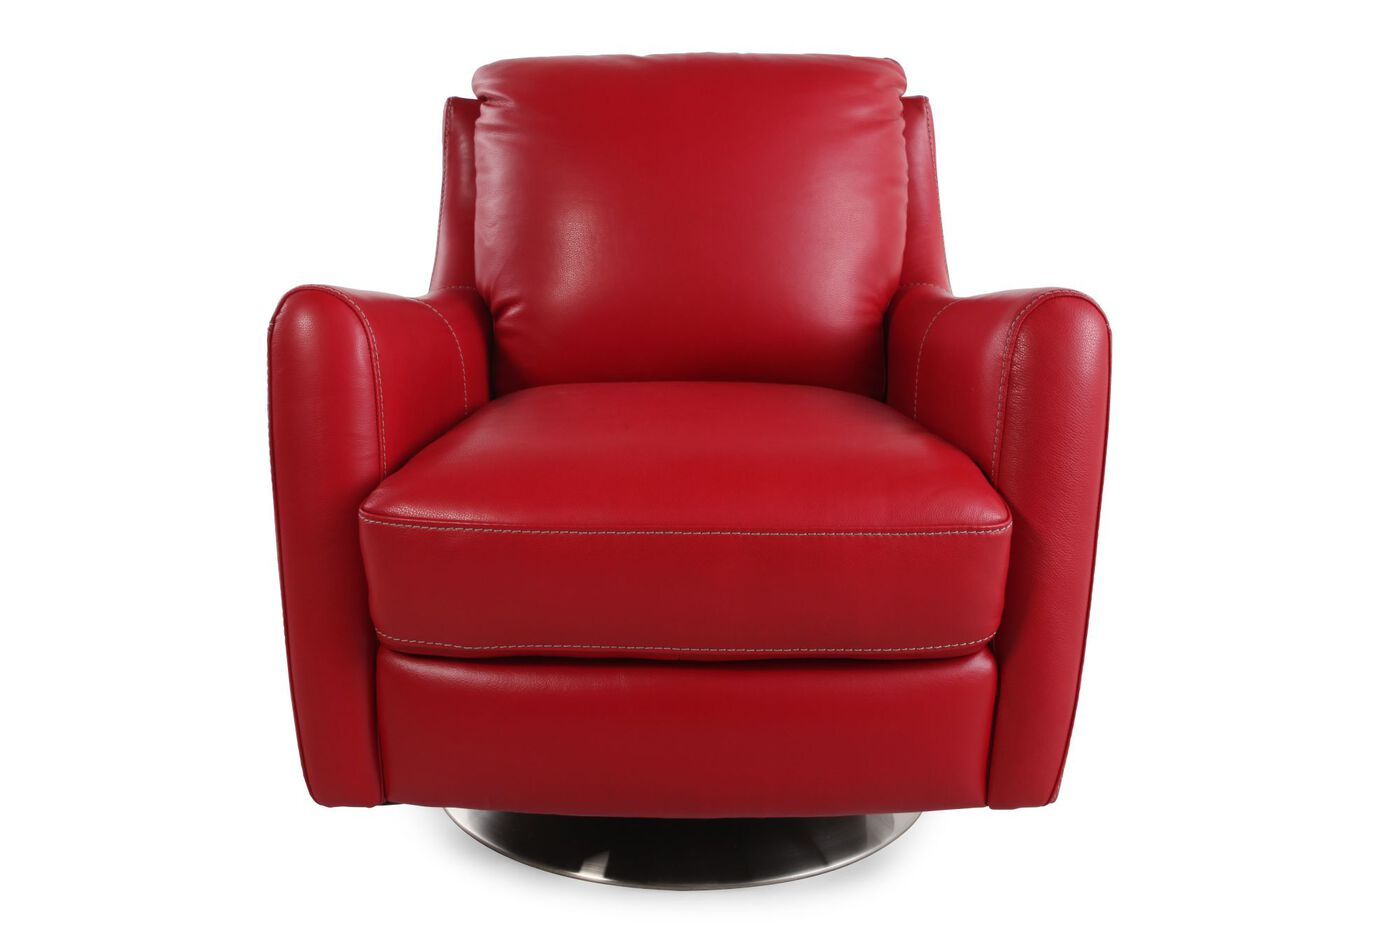 Lazboy Xavier Red Leather Swivel Chair  Mathis Brothers. Temporary Wall To Divide A Room. Interior Design Small Room. Laundry Room Table. Lowes Laundry Room Ideas. Room Dividers Folding Doors. Dressing Room Designs. Dining Room Chair Cushions. Moroccan Living Room Design Ideas